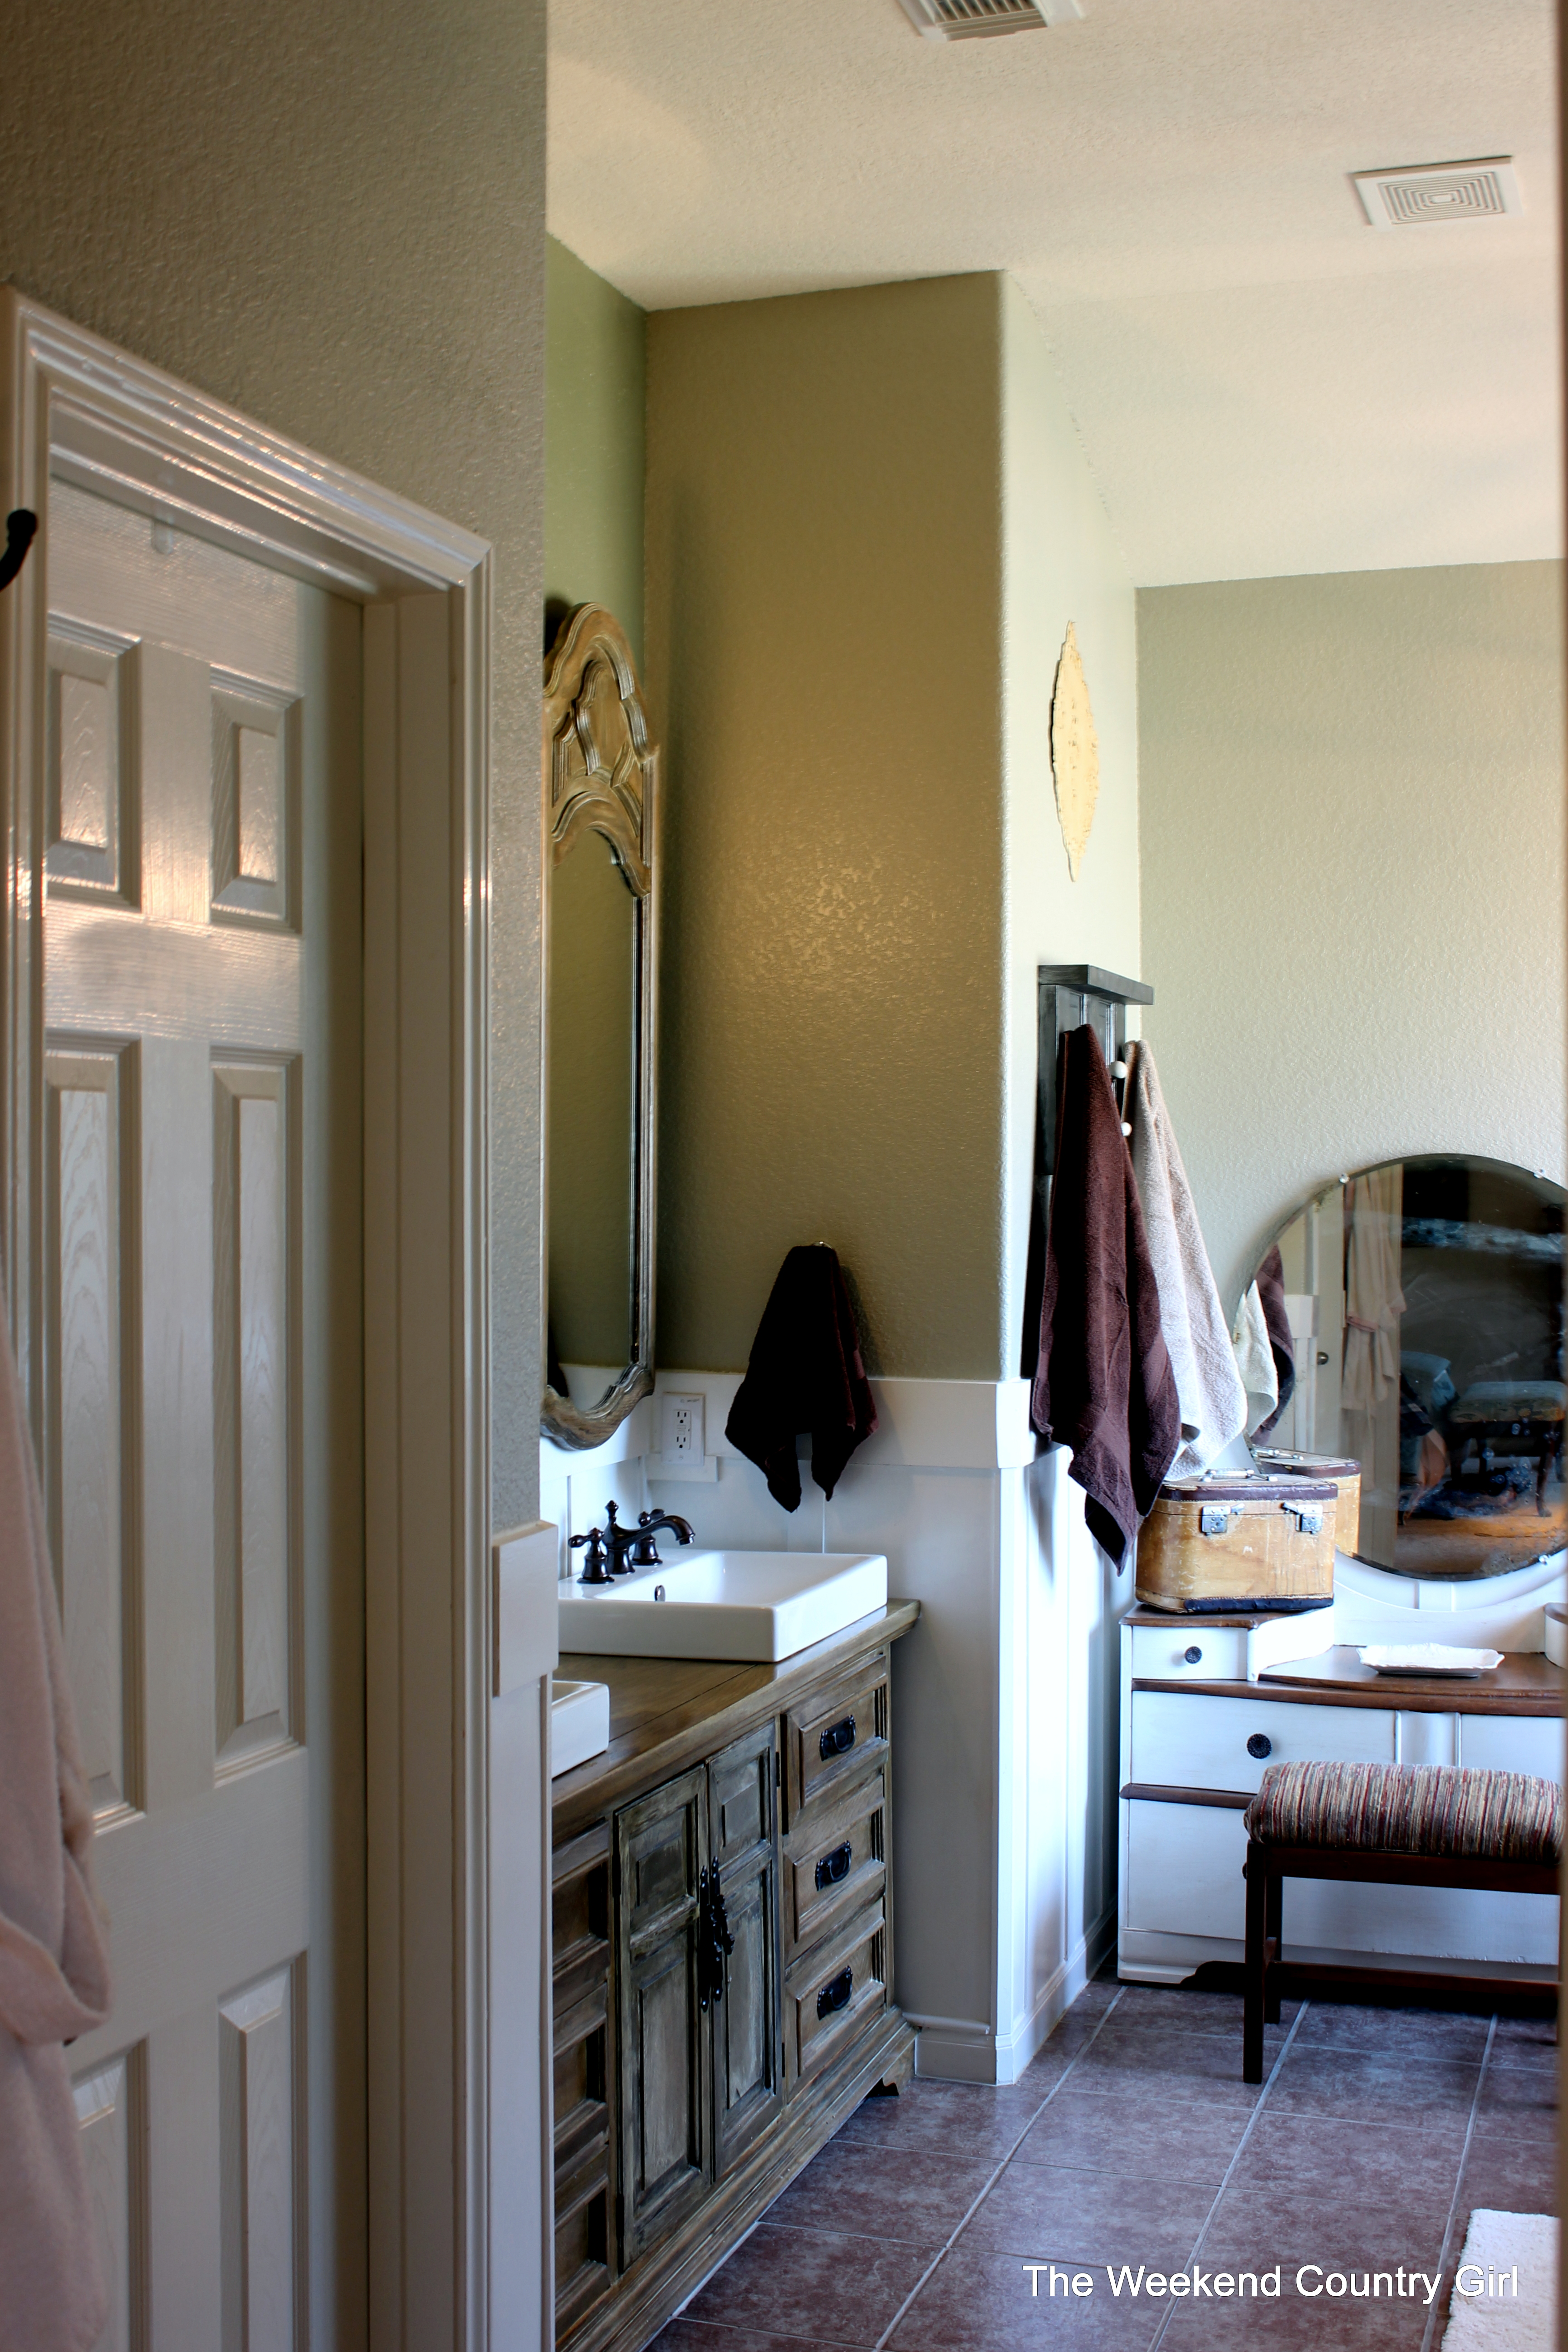 Marvelous Bathroom makeover with storage by The Weekend Country Girl featured on Remodelaholic